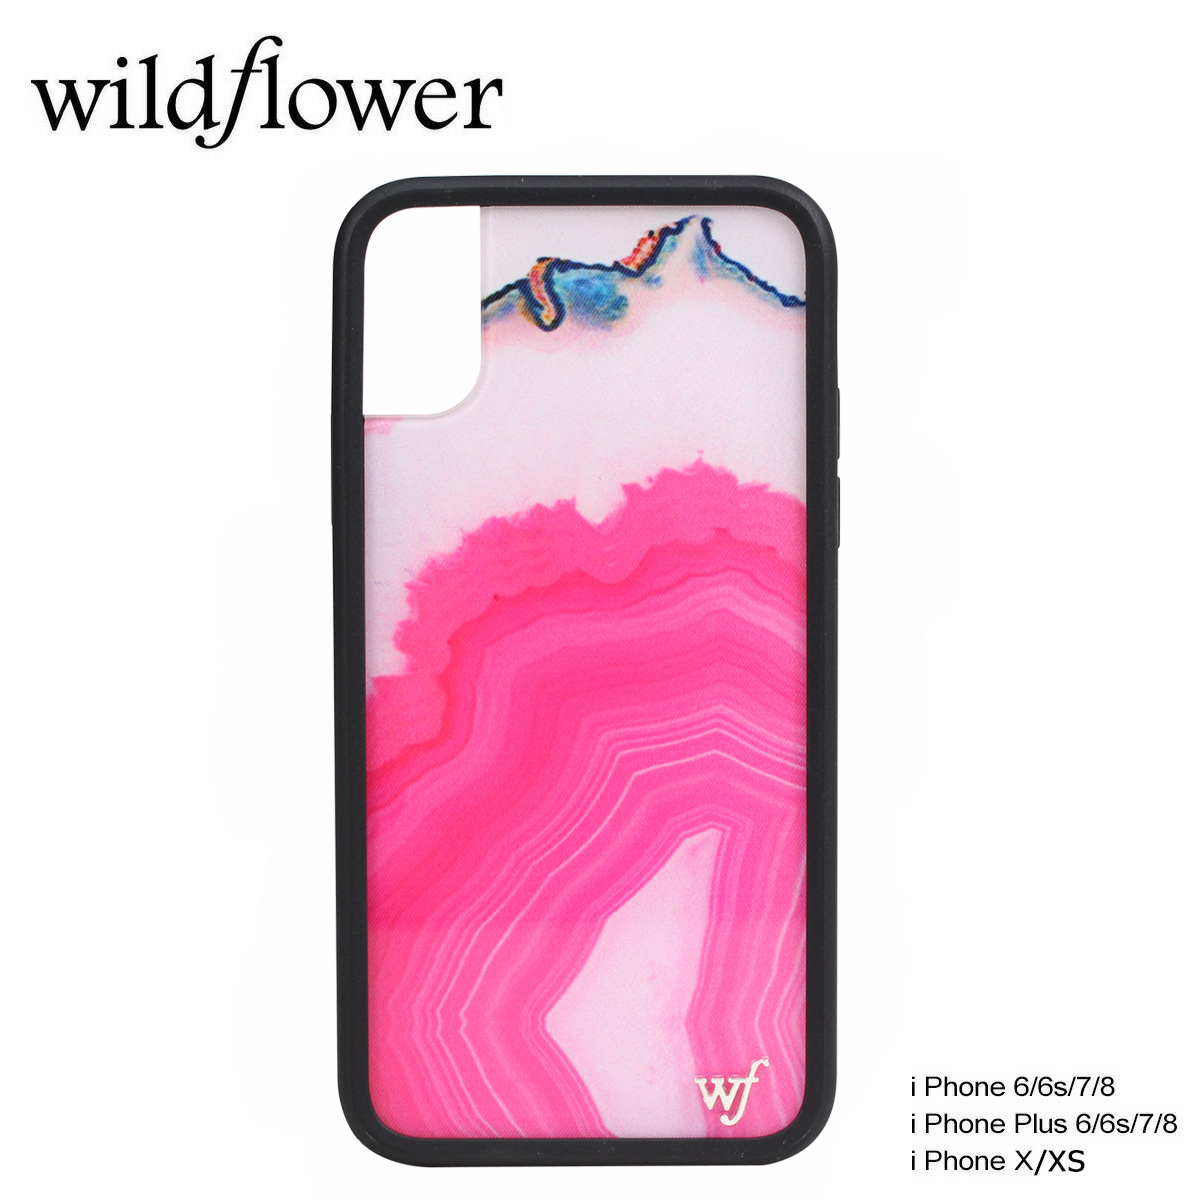 low priced 16d7e 5b1f2 wildflower iPhone8 X 7 iPhone 6 6s Plus wild flower case smartphone  eyephone Lady's marble pink MSTO